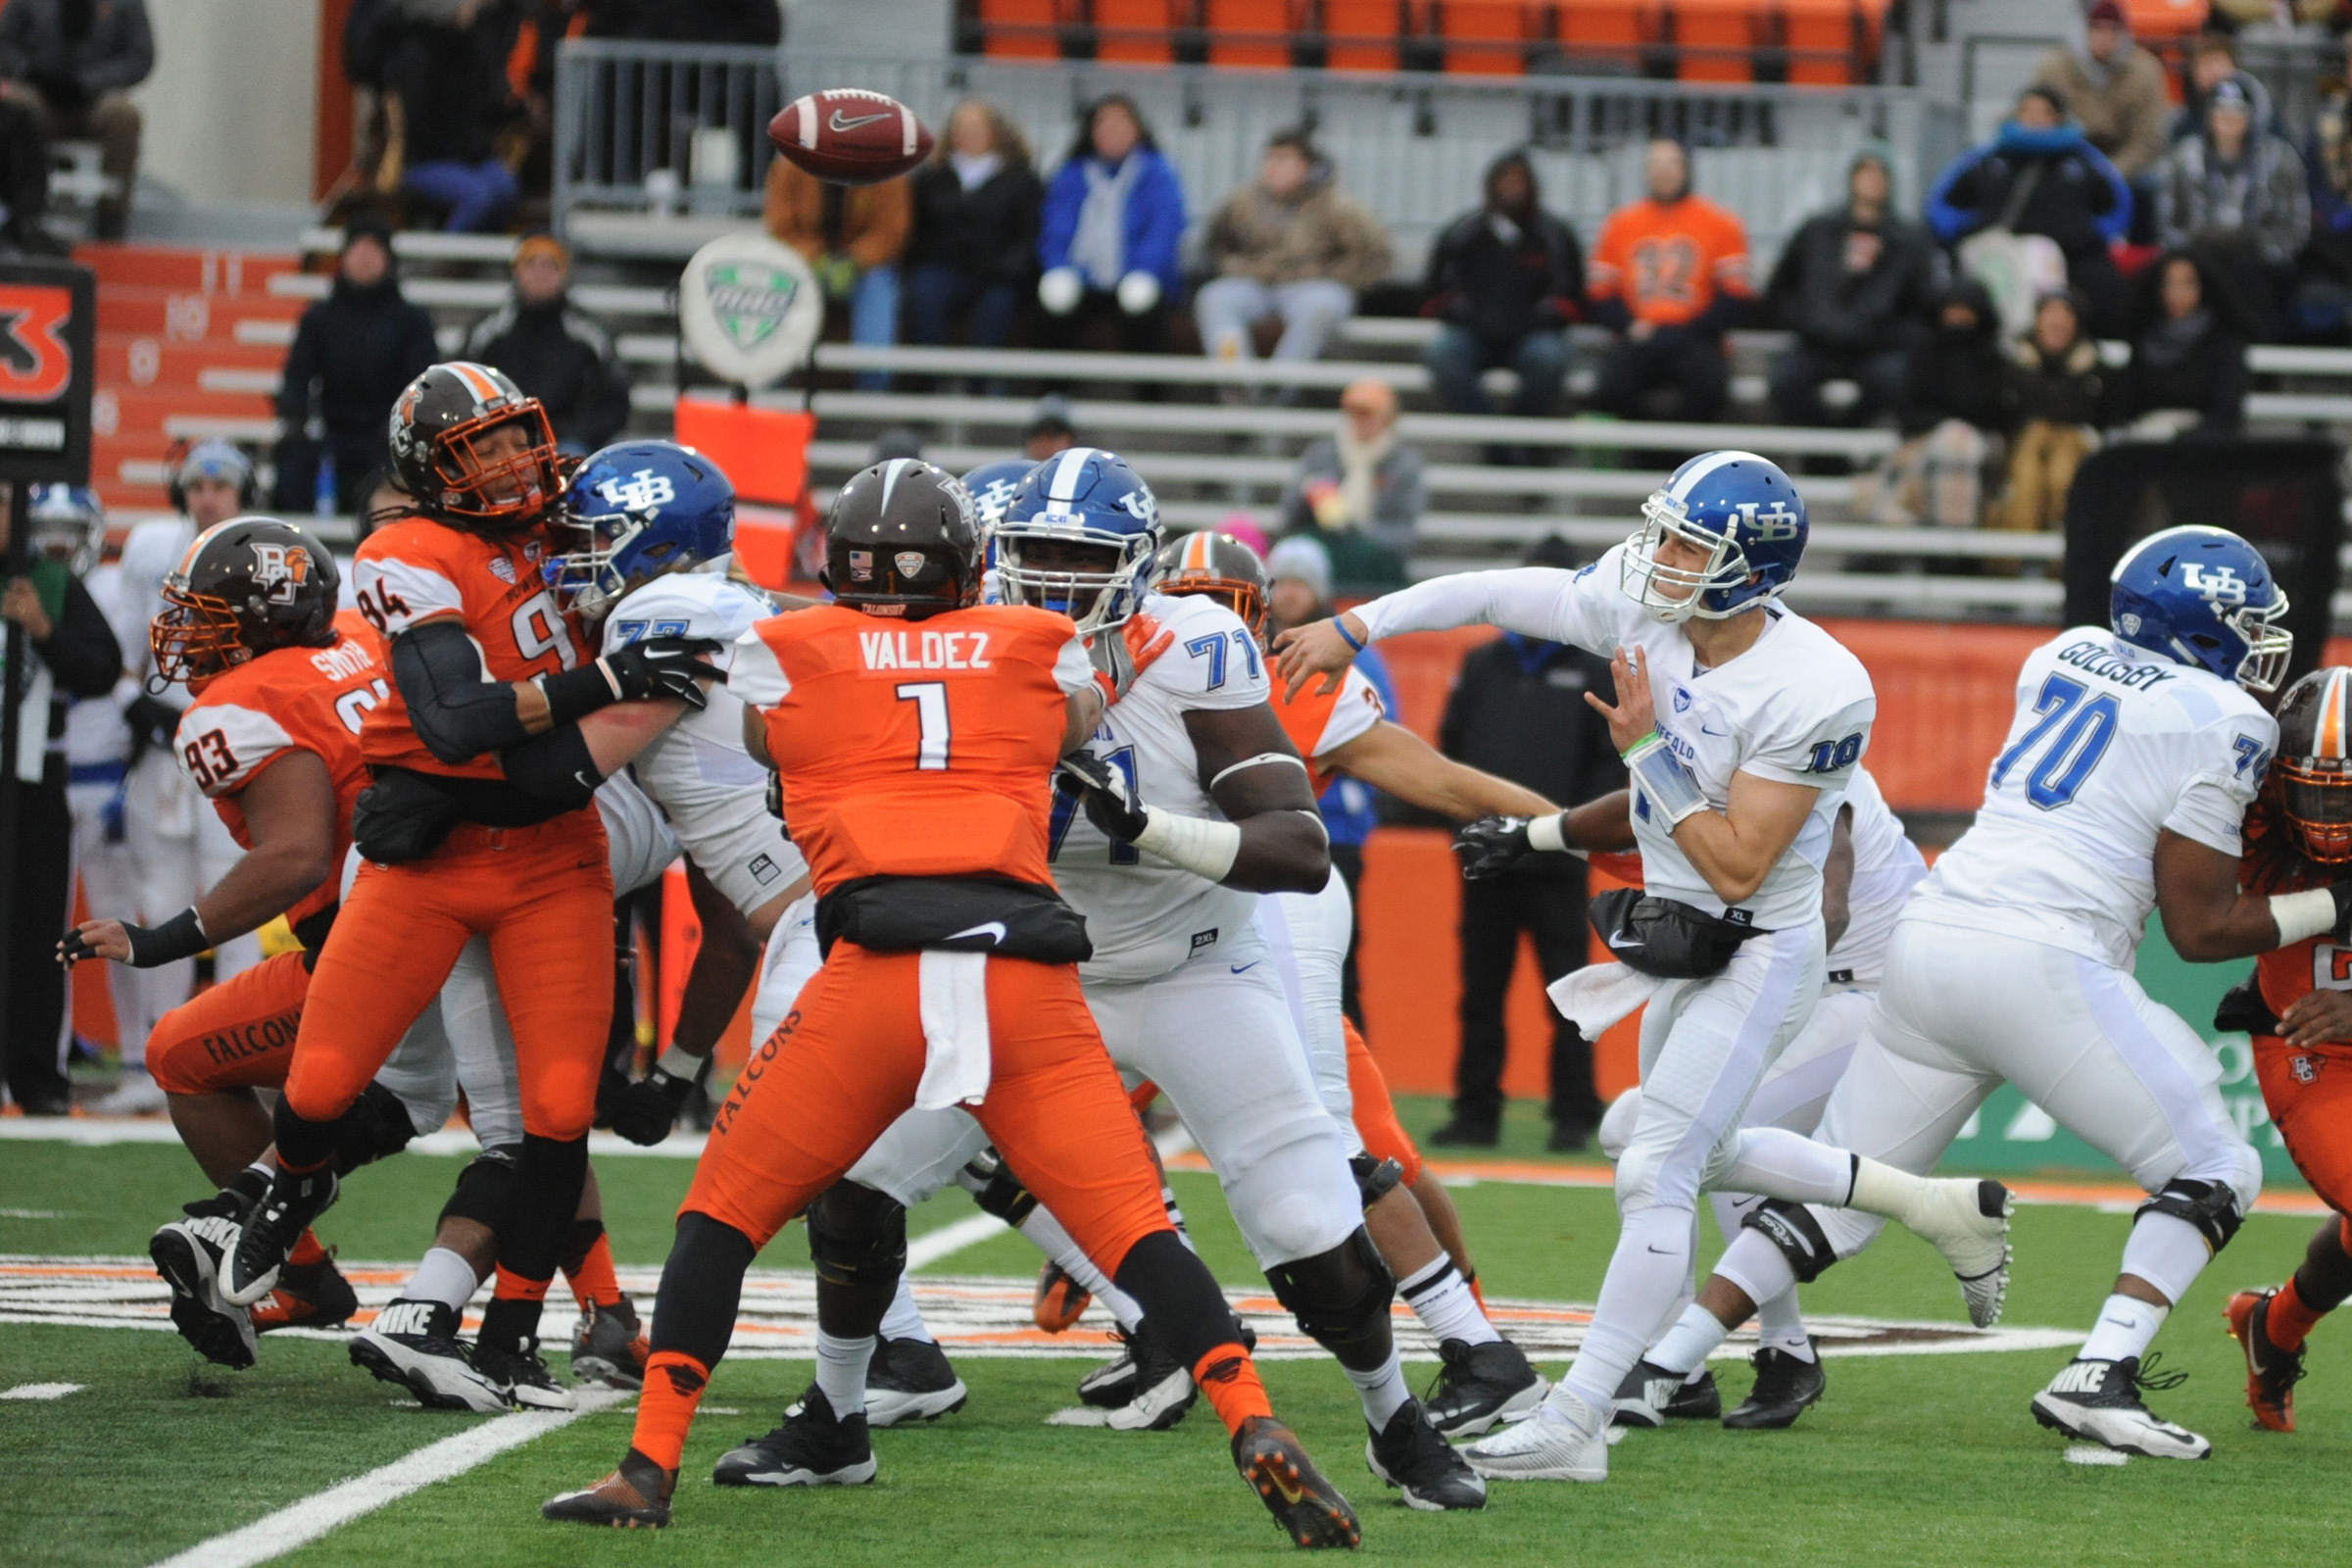 Grant Rohach threw for a UB season-high 334 yards on 20-of-35 passing with two touchdowns and no interceptions.. (Daniel Melograna/Bowling Green Sentinel-Tribune)